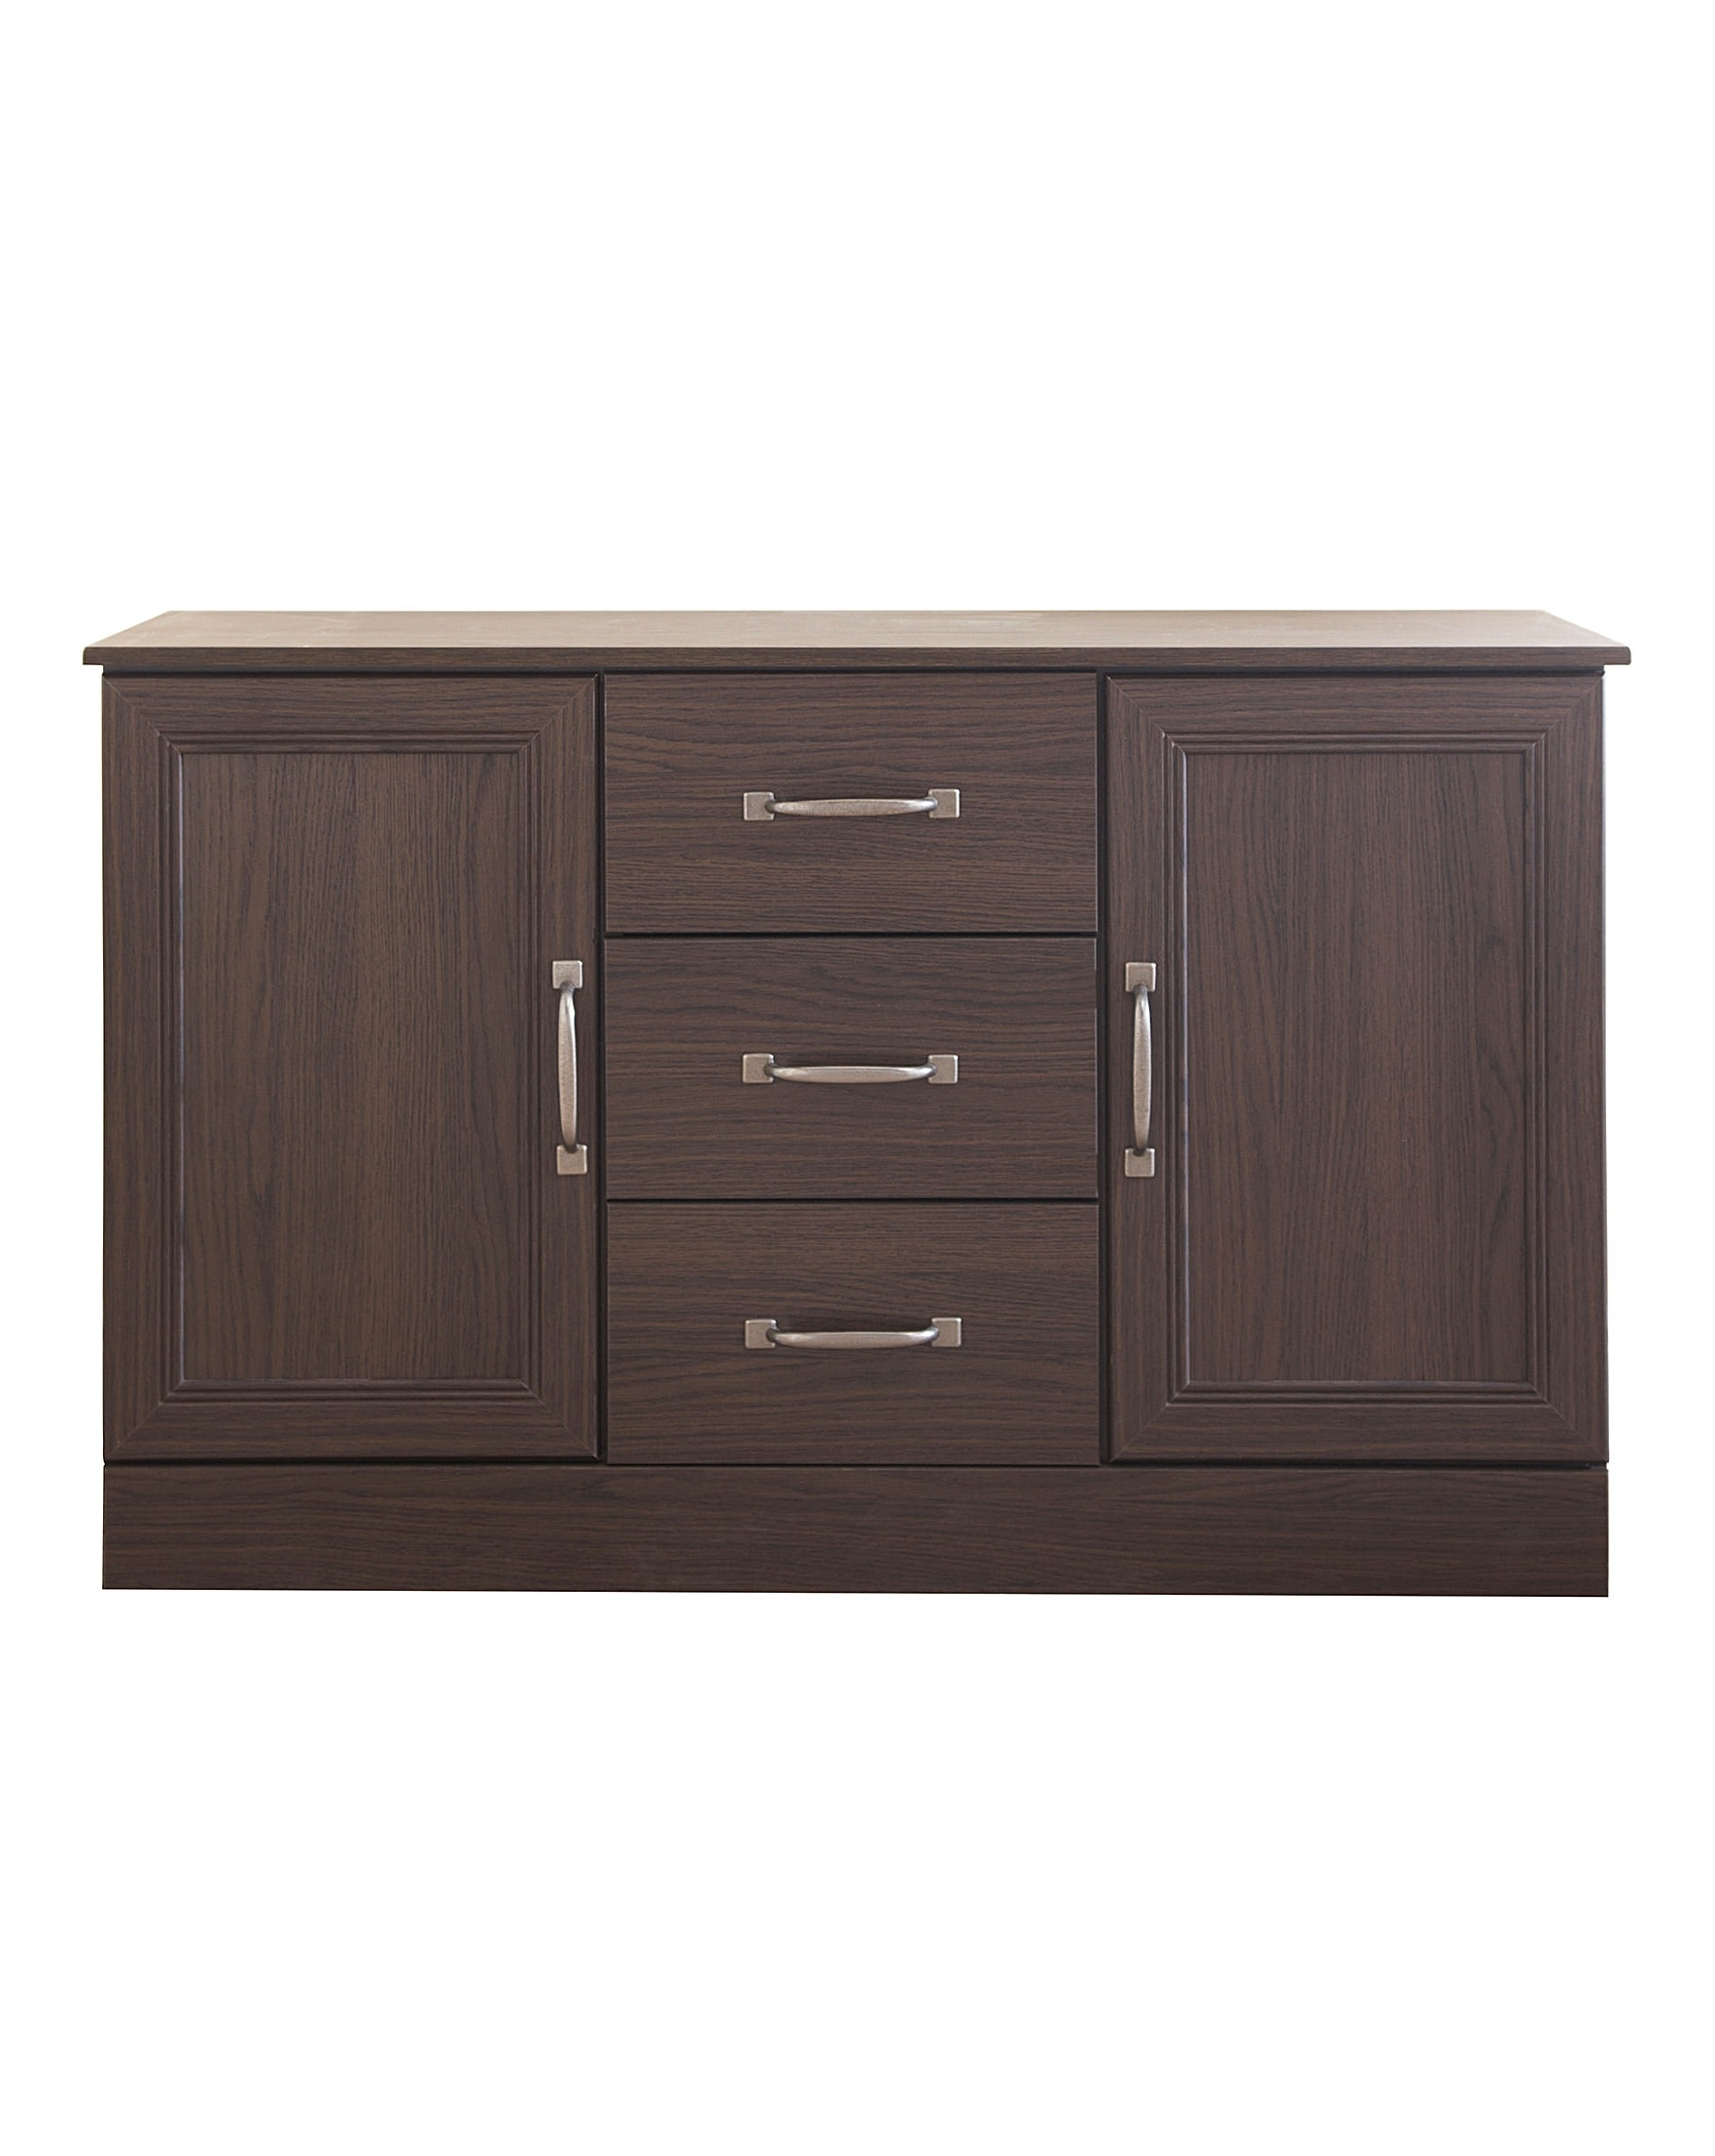 Stowe 2 Door 3 Drawer Sideboard | Fashion World in Antique Walnut Finish 2-Door/4-Drawer Sideboards (Image 27 of 30)